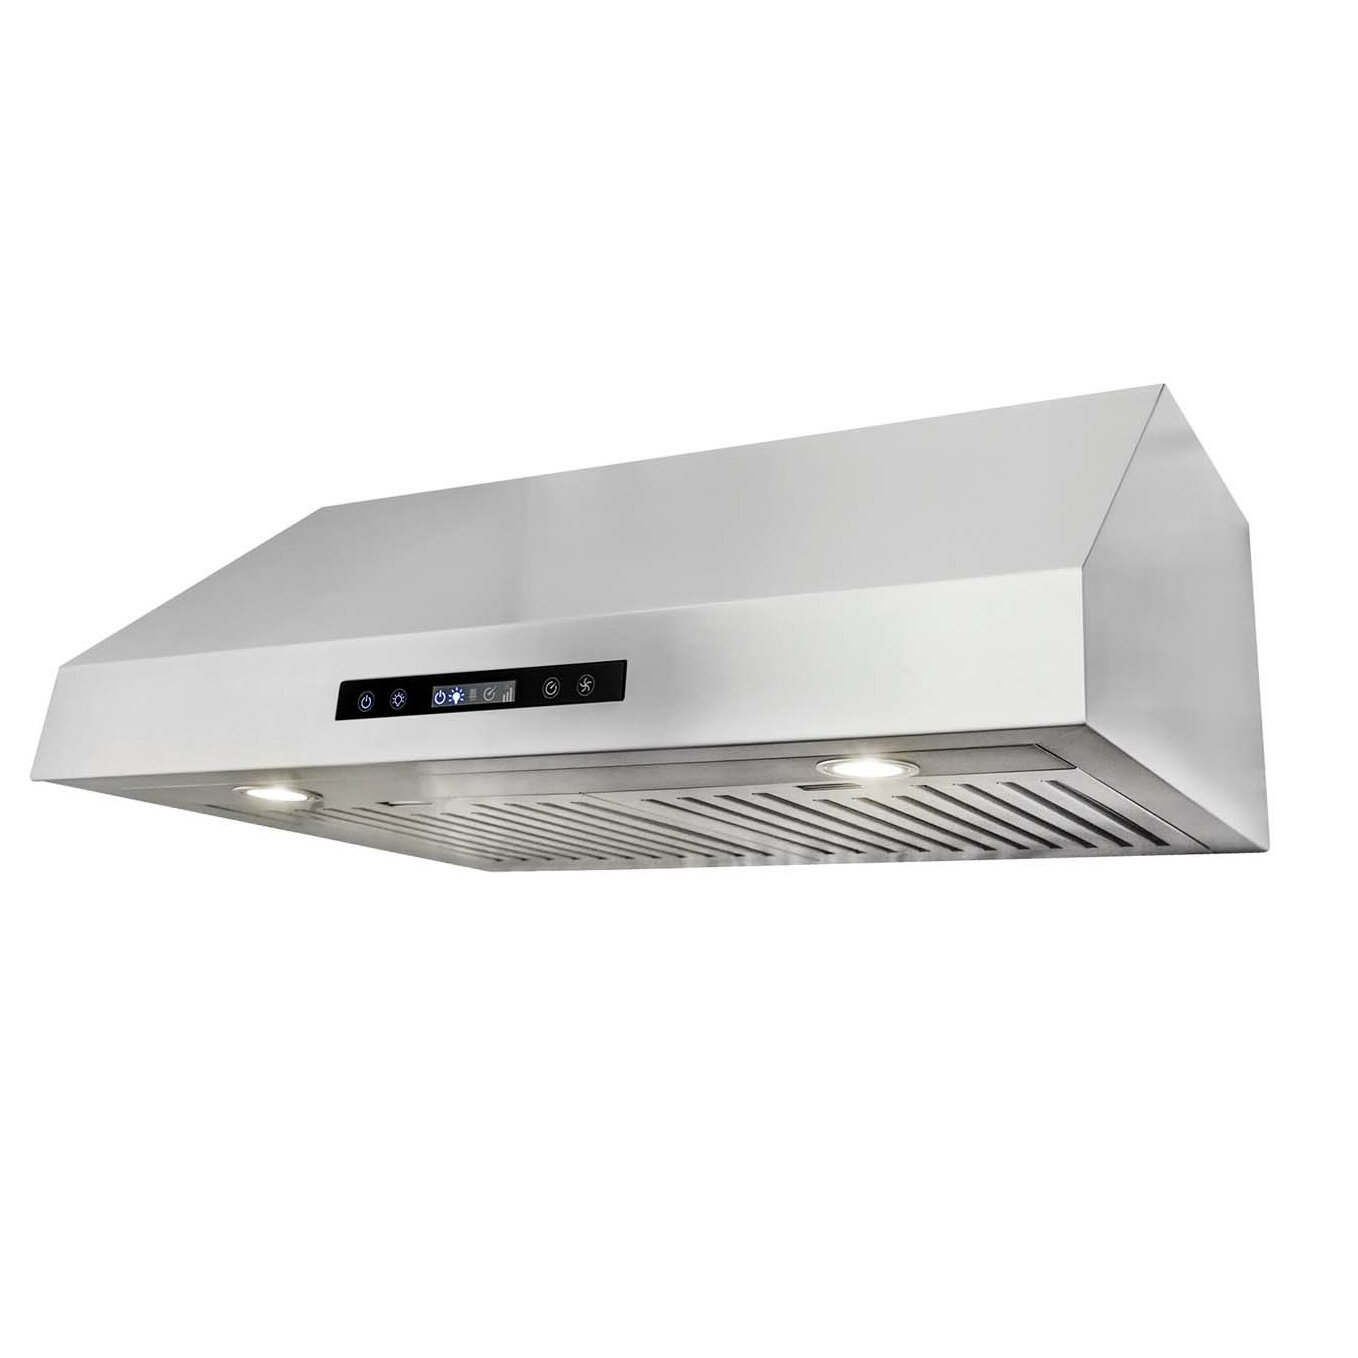 cosmo 30 750 cfm ducted under cabinet range hood in stainless steel reviews wayfair. Black Bedroom Furniture Sets. Home Design Ideas